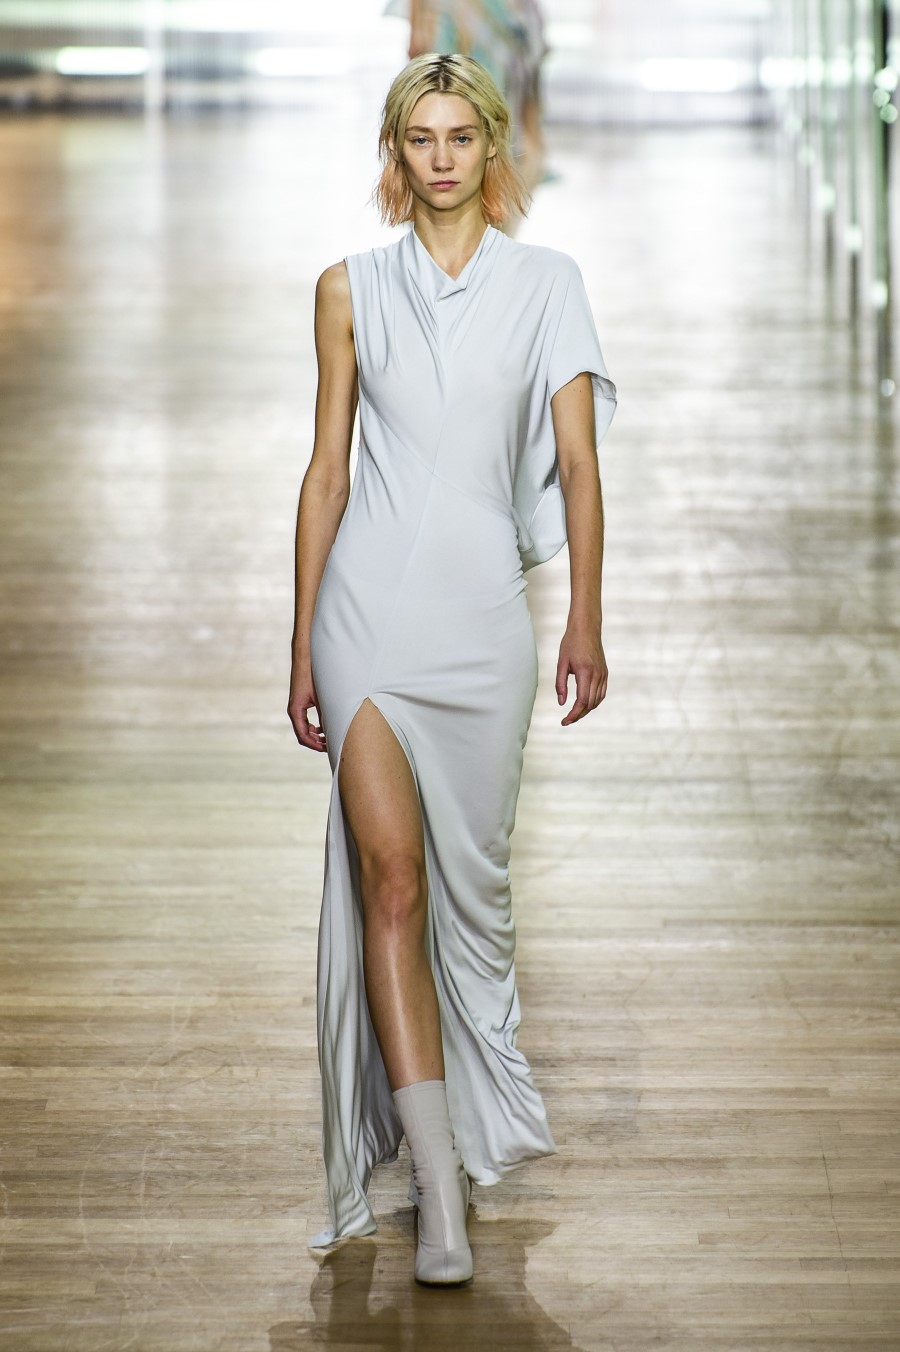 Poiret Spring Summer 2019 – Paris Fashion Week